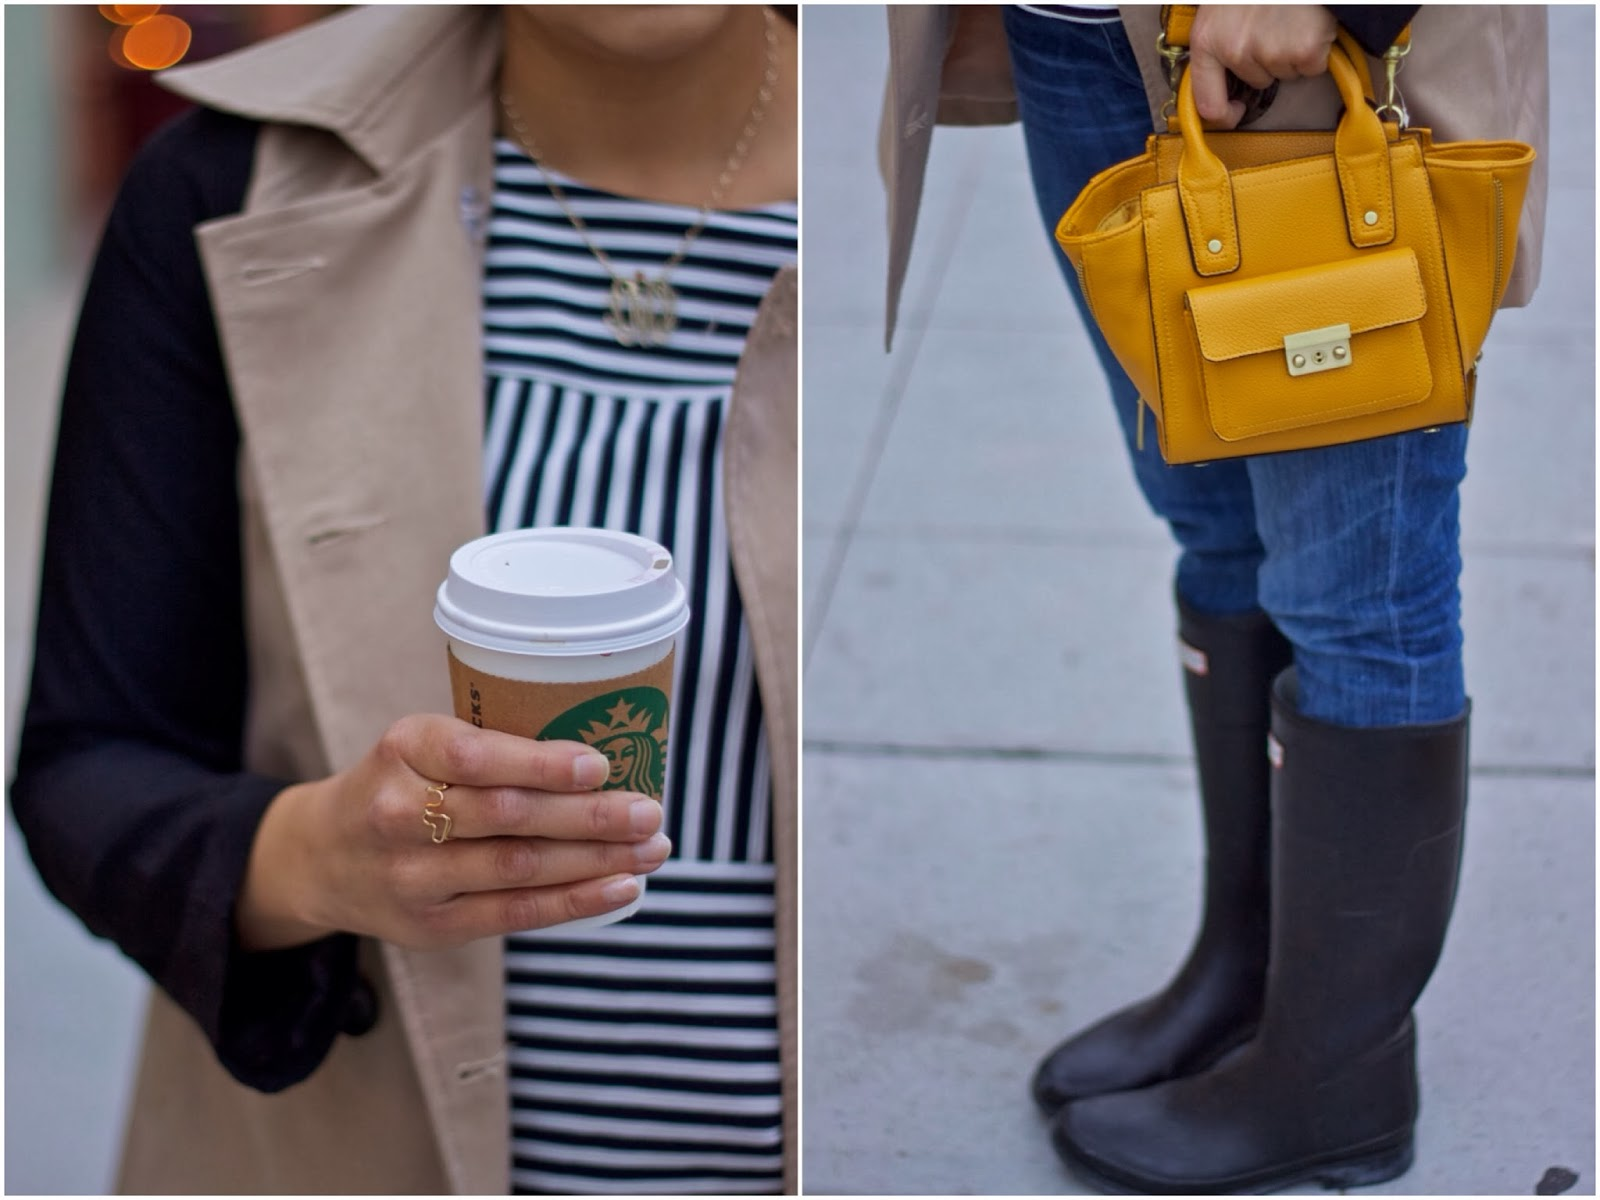 Rainy Day Coffee Date outfit details, 3.1 phillip lim for Target purse in yellow styled